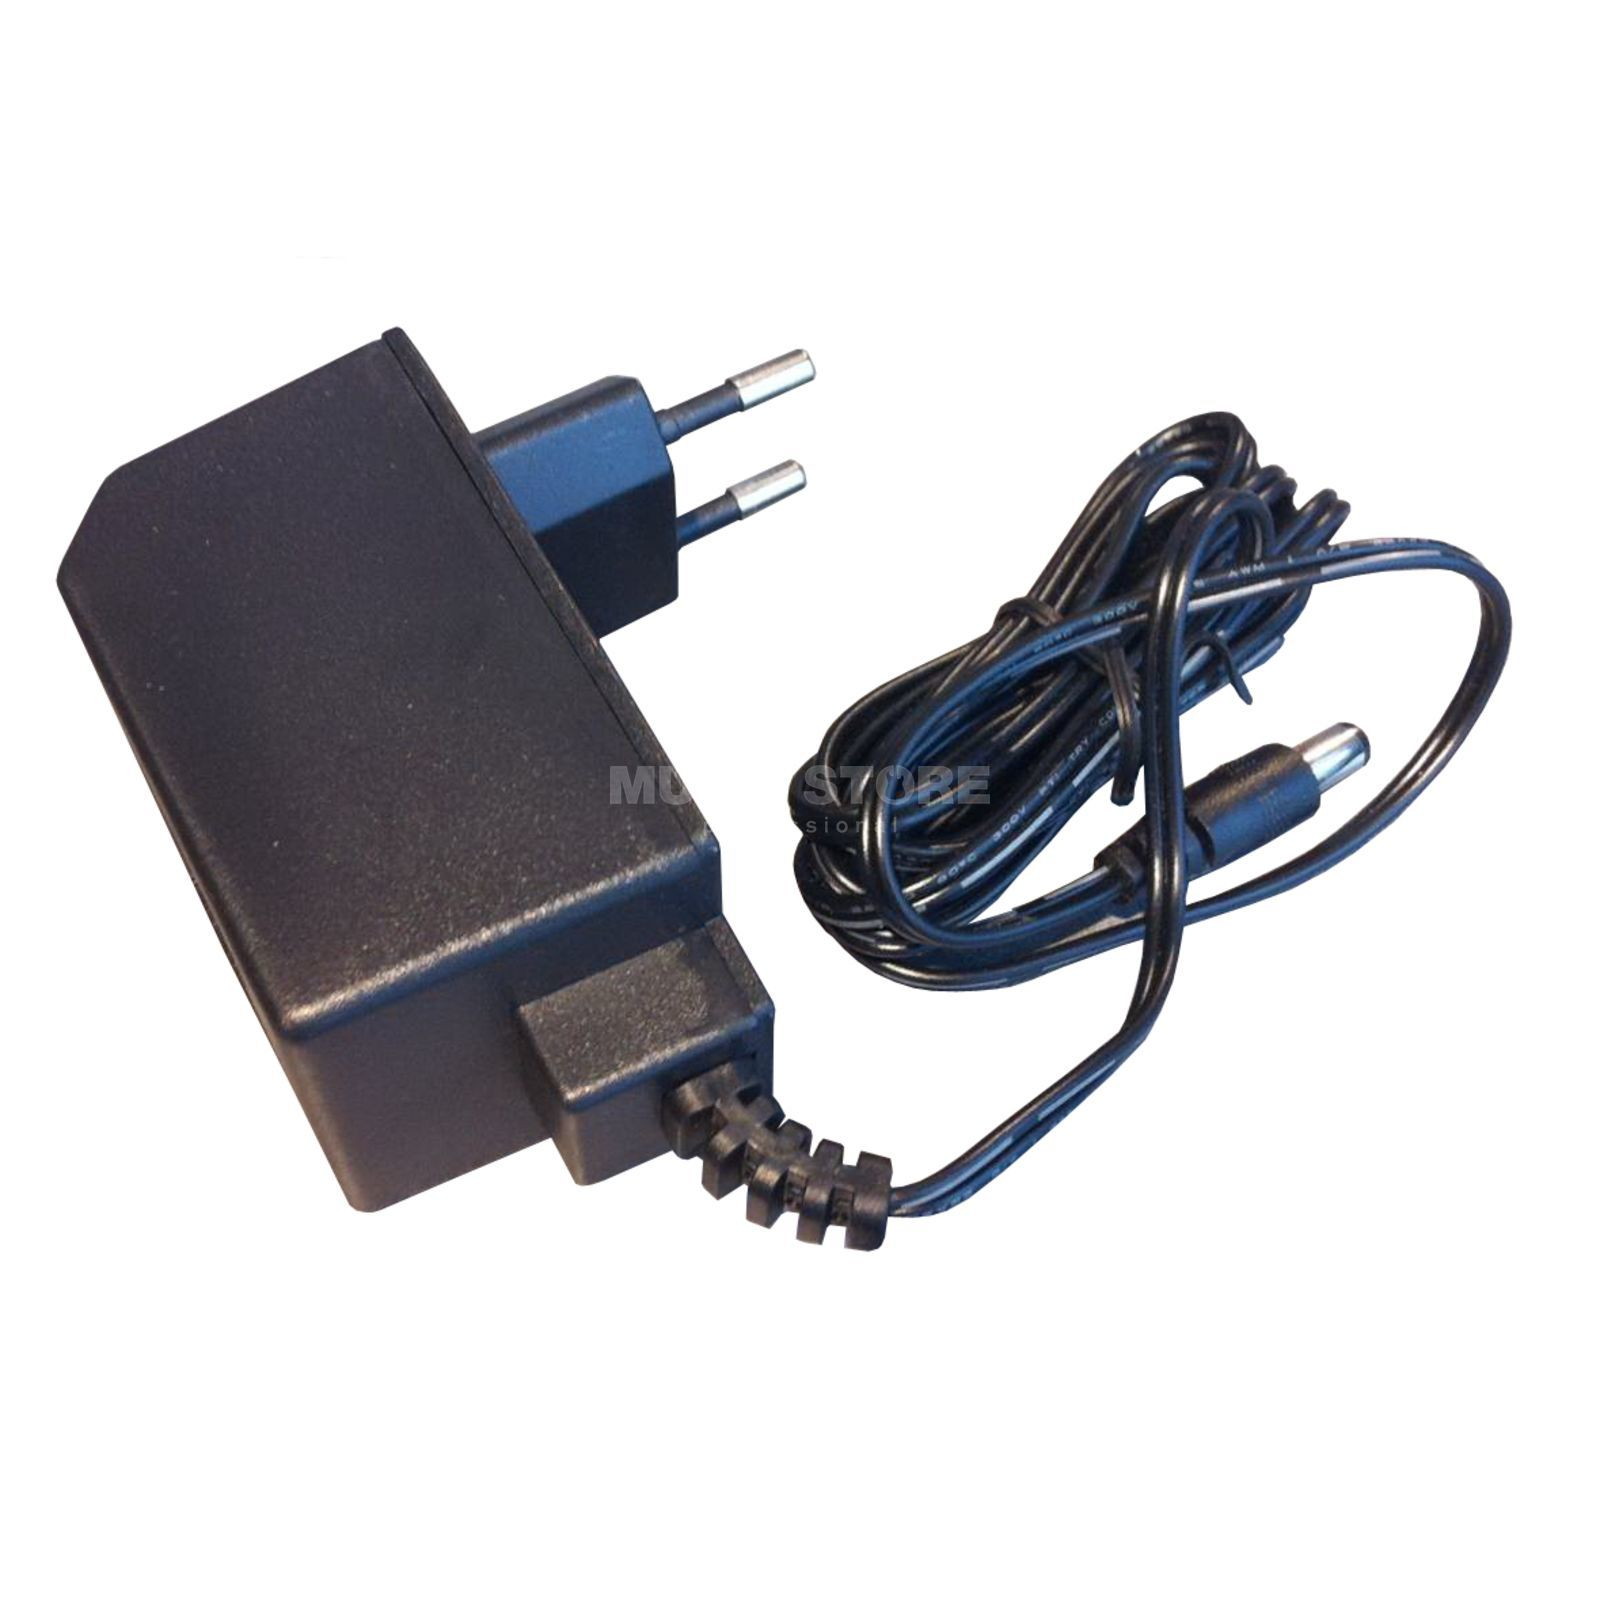 Alesis Power Adapter for DM 5 Sound Module Zdjęcie produktu